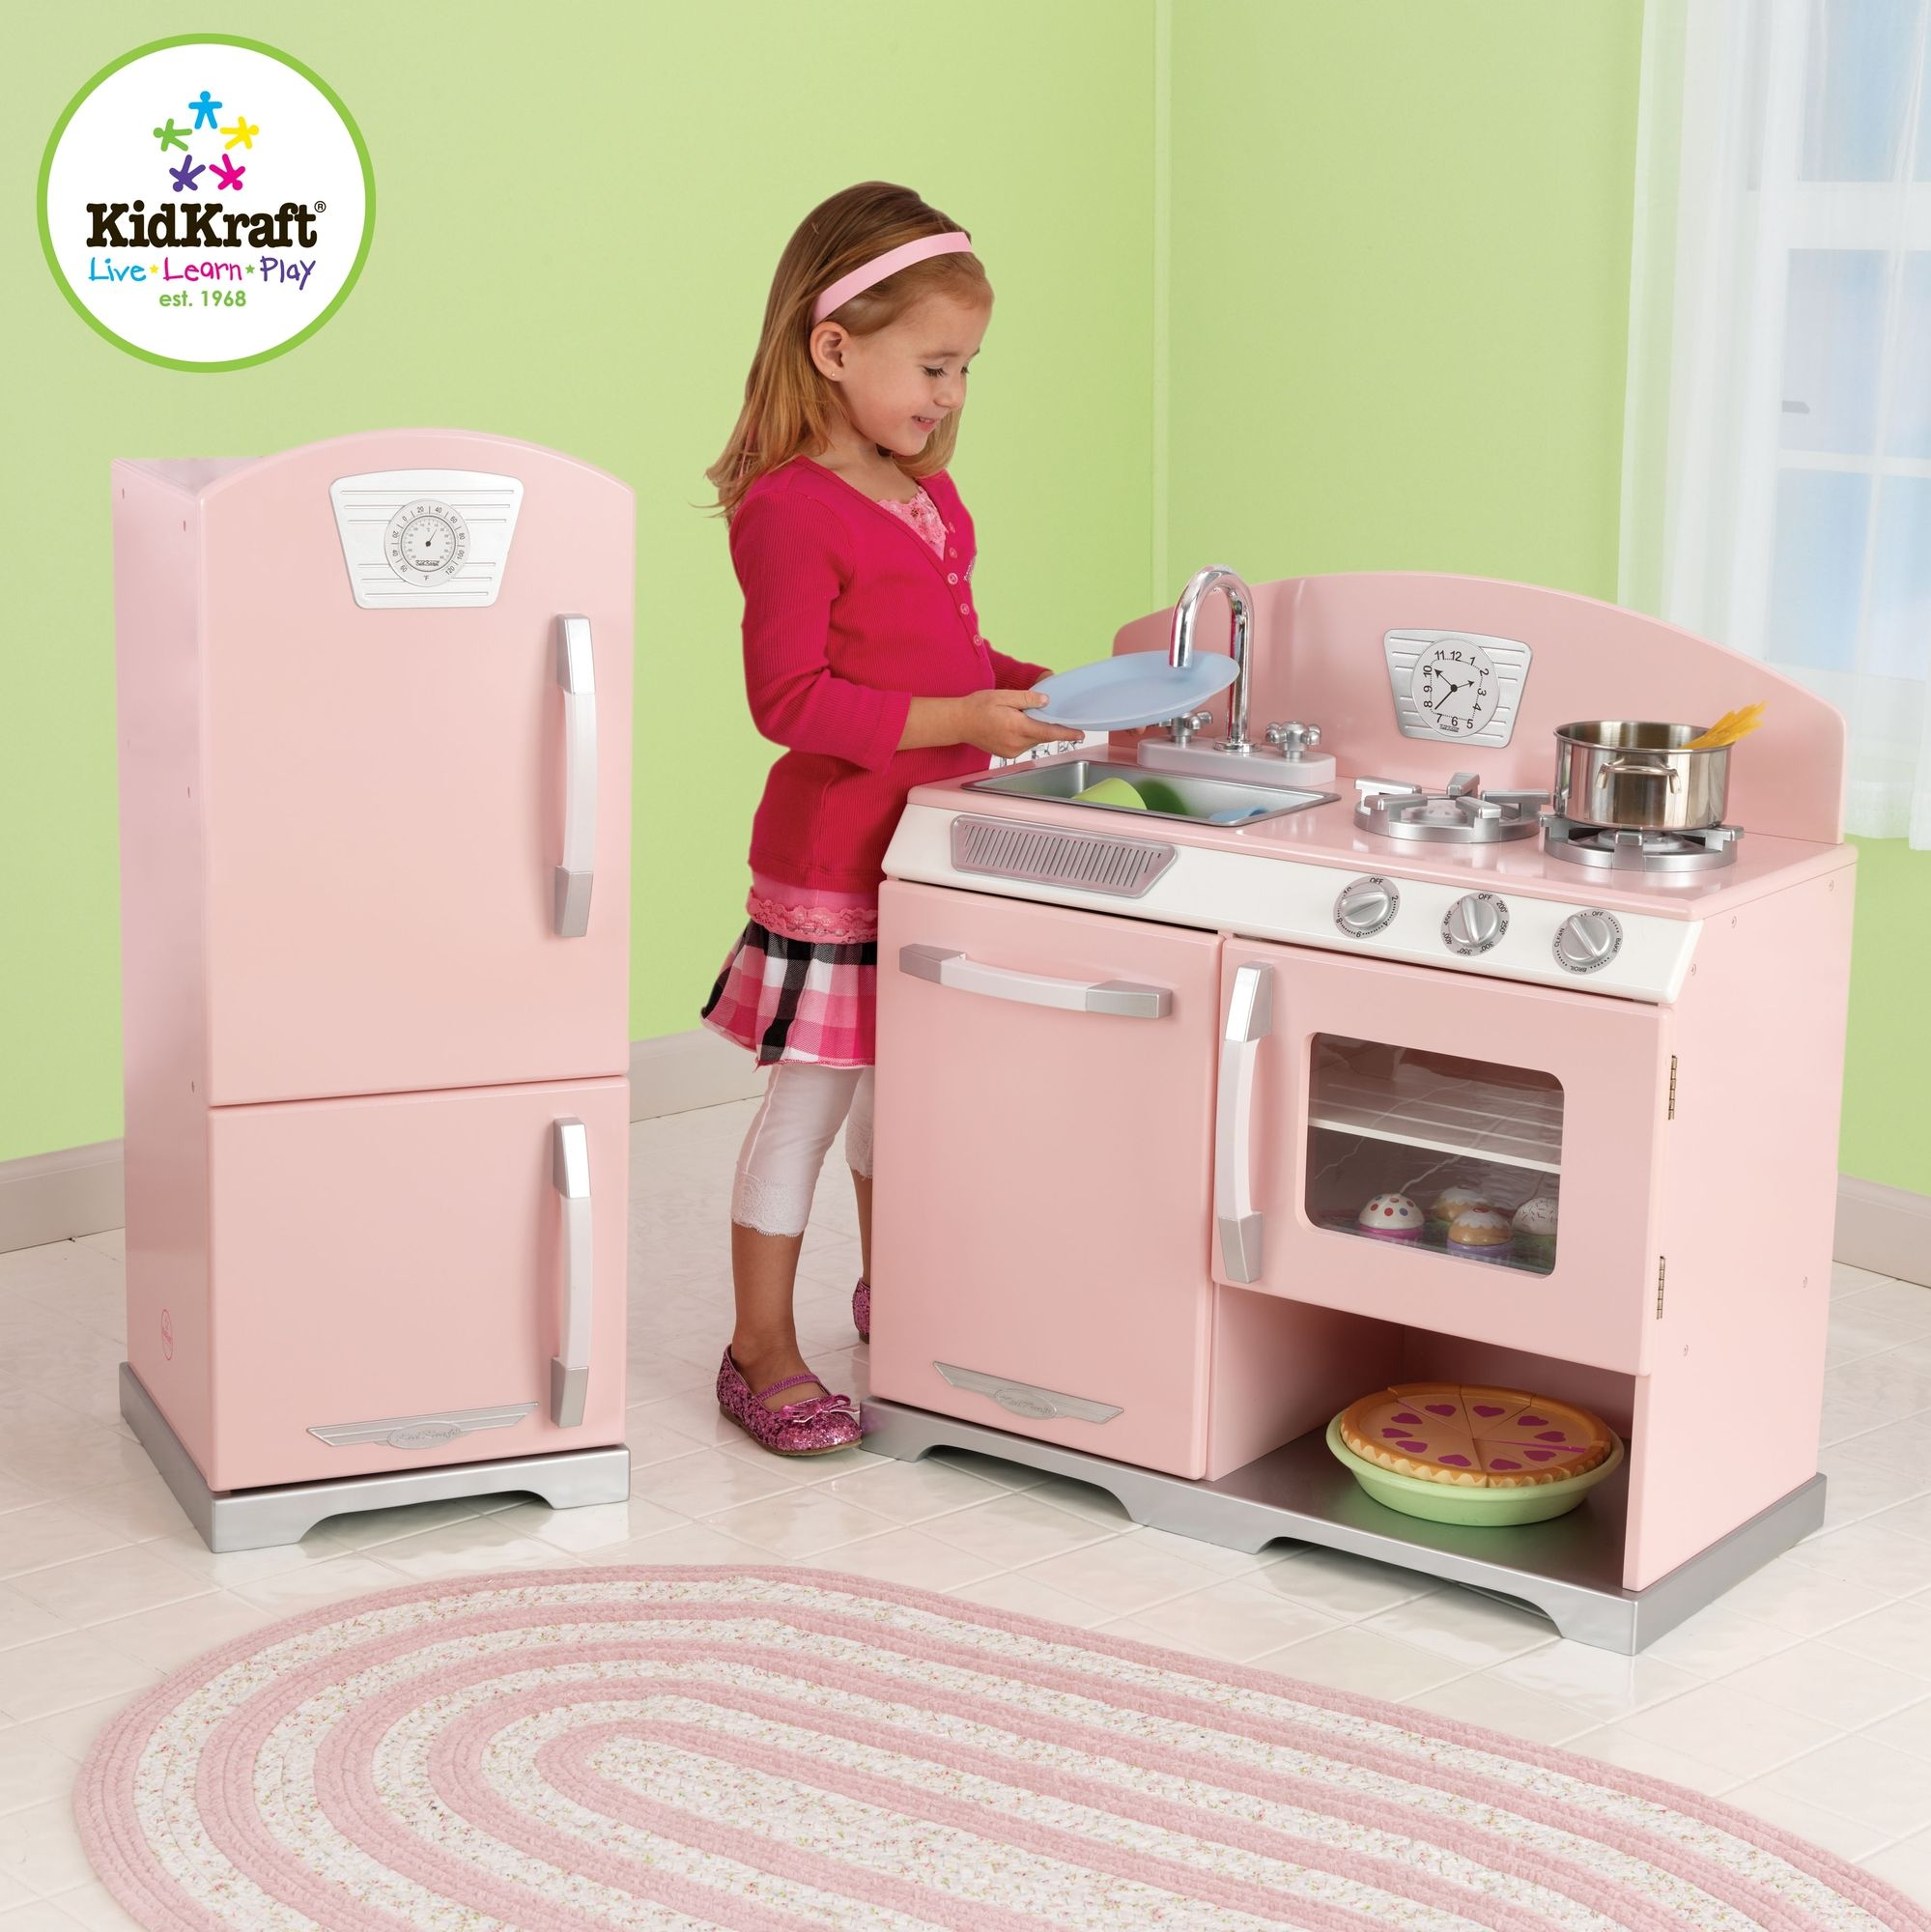 Kidkraft Pink Retro Kitchen Refrigerator This Is On My Christmas Ping List For Serenity 3